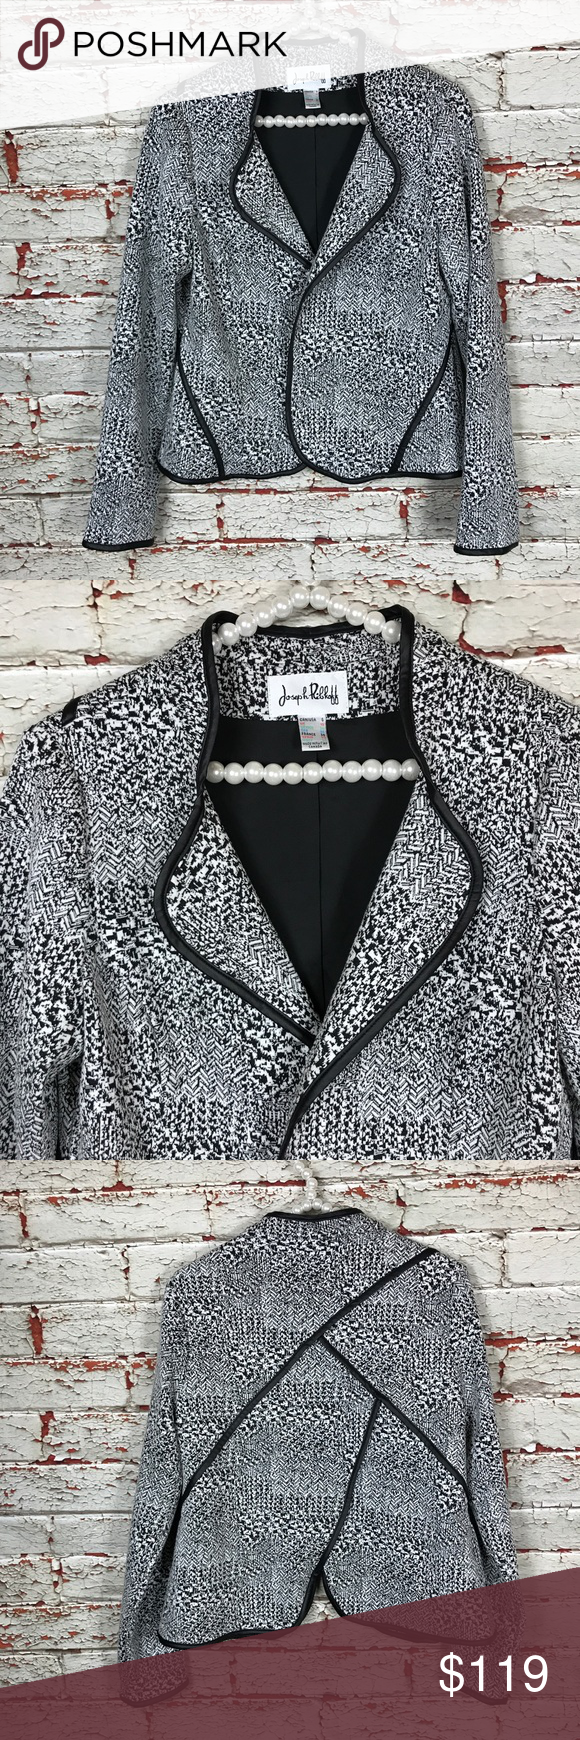 """Joseph Ribkoff Jacket Blazer Size 8 Joseph Ribkoff Jacket Blazer Sz 8 Coat Cardigan Open Front Textured Fully Lined  Item Description/Specifics: • Pre-owned, gently worn • Size: 8 • Open front • Shoulder to shoulder: 15.5"""" unstretched • Sleeve length: 23.25"""" unstretched • Armpit to armpit: 19"""" unstretched • Length: 21.5"""" unstretched • No material content tag  Stock#: NB Joseph Ribkoff Jackets & Coats Blazers"""